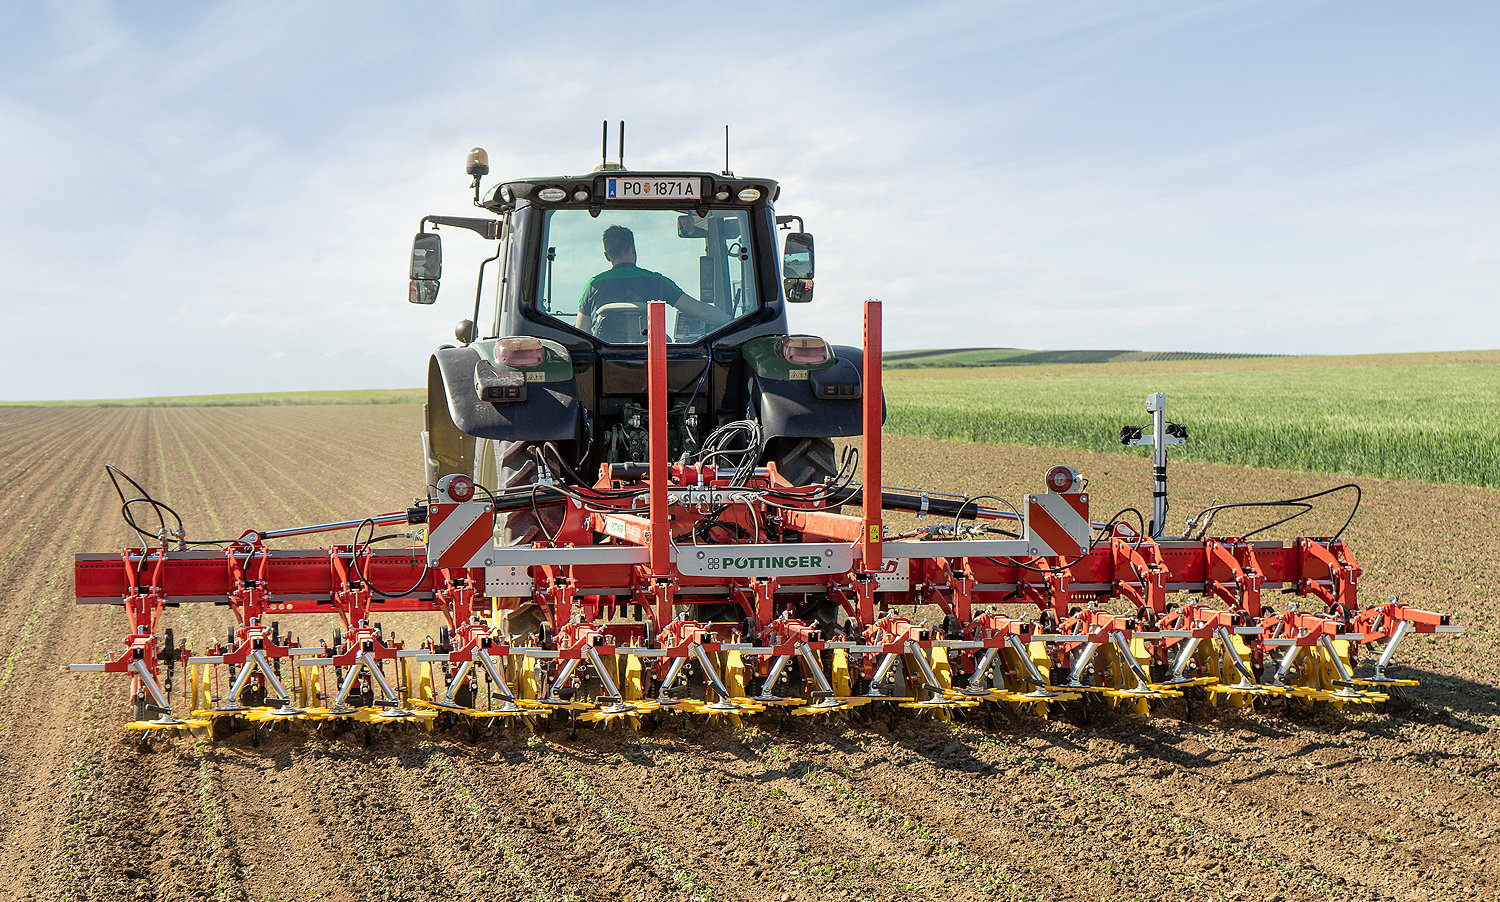 Pöttinger's FlexCare vario hoe offers full flexibility for working in a variety of crops